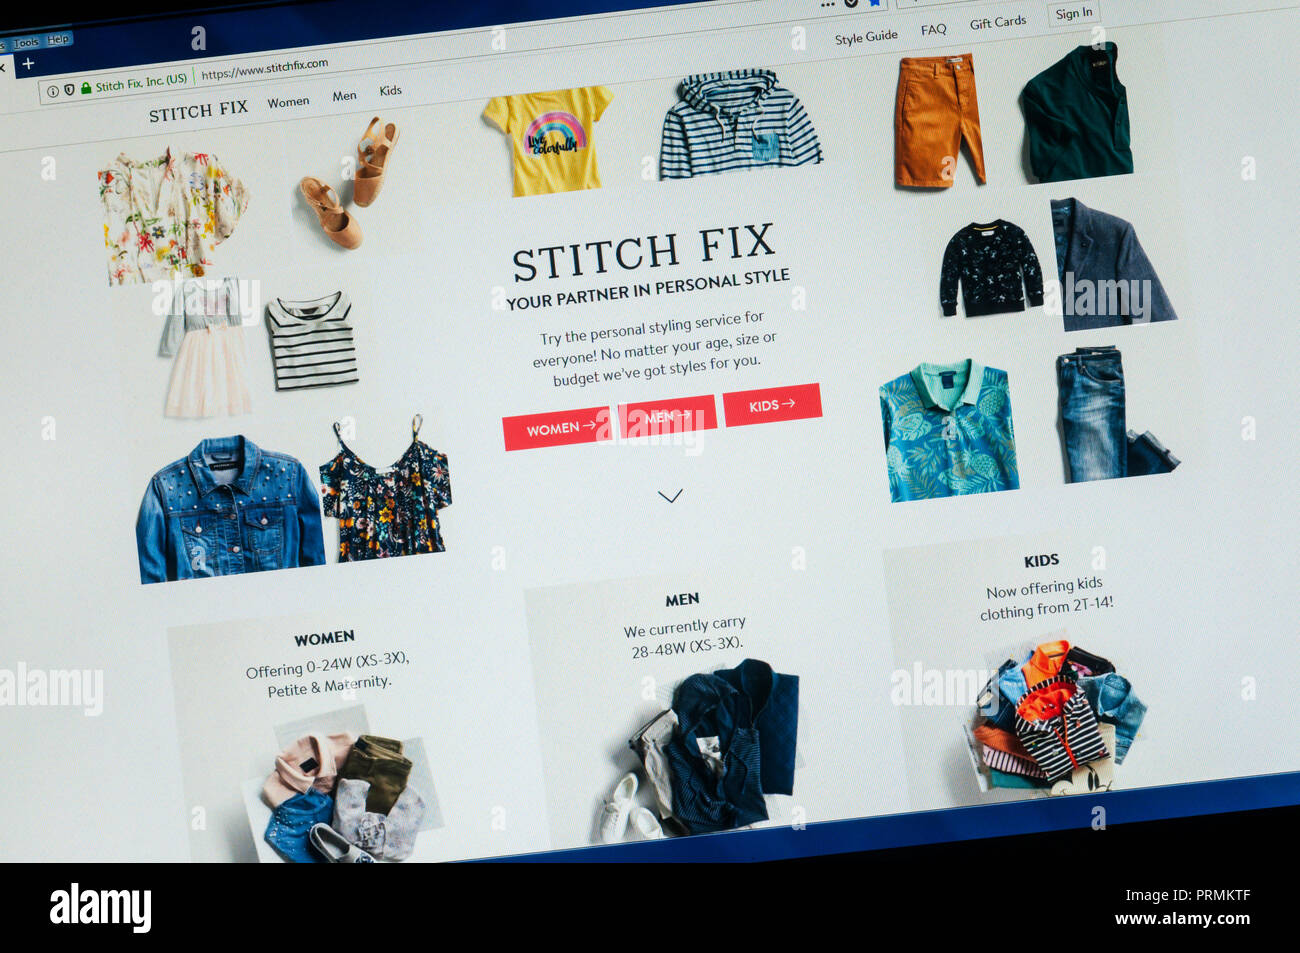 Home page of the American clothing website Stitch Fix. - Stock Image